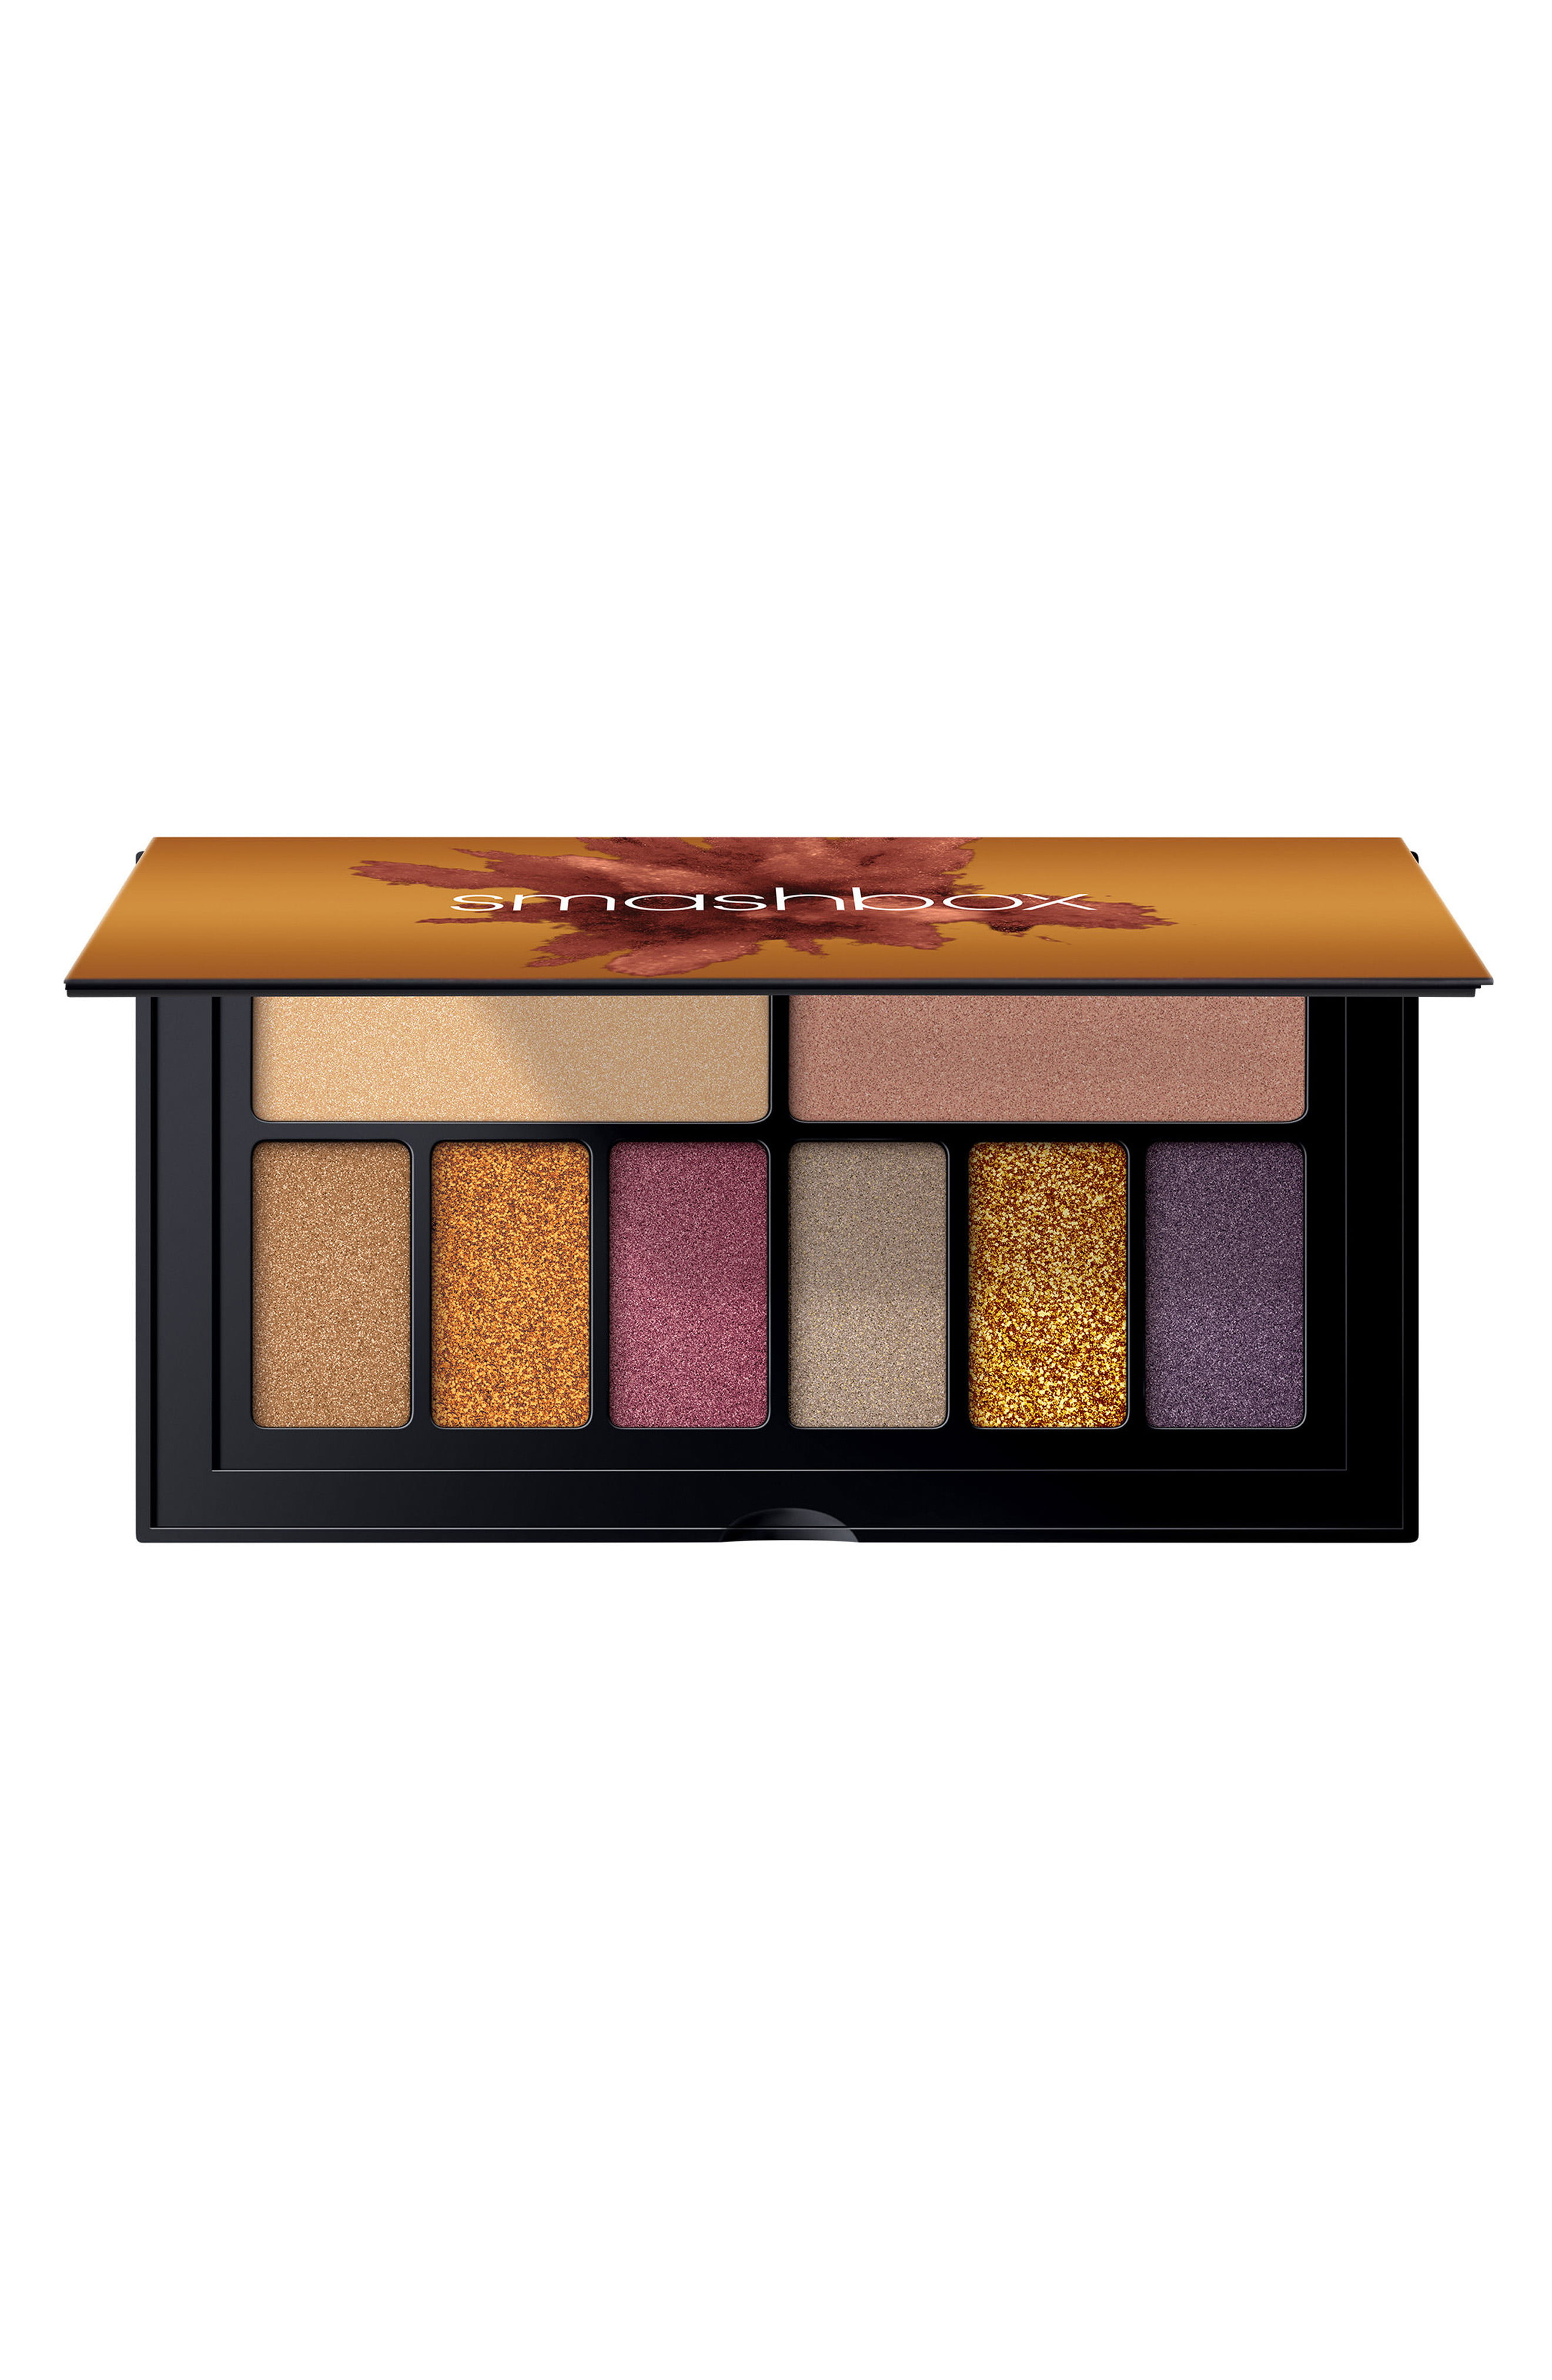 Buy PÜR 12 Piece Anti-Pollution Eyeshadow Palette from the